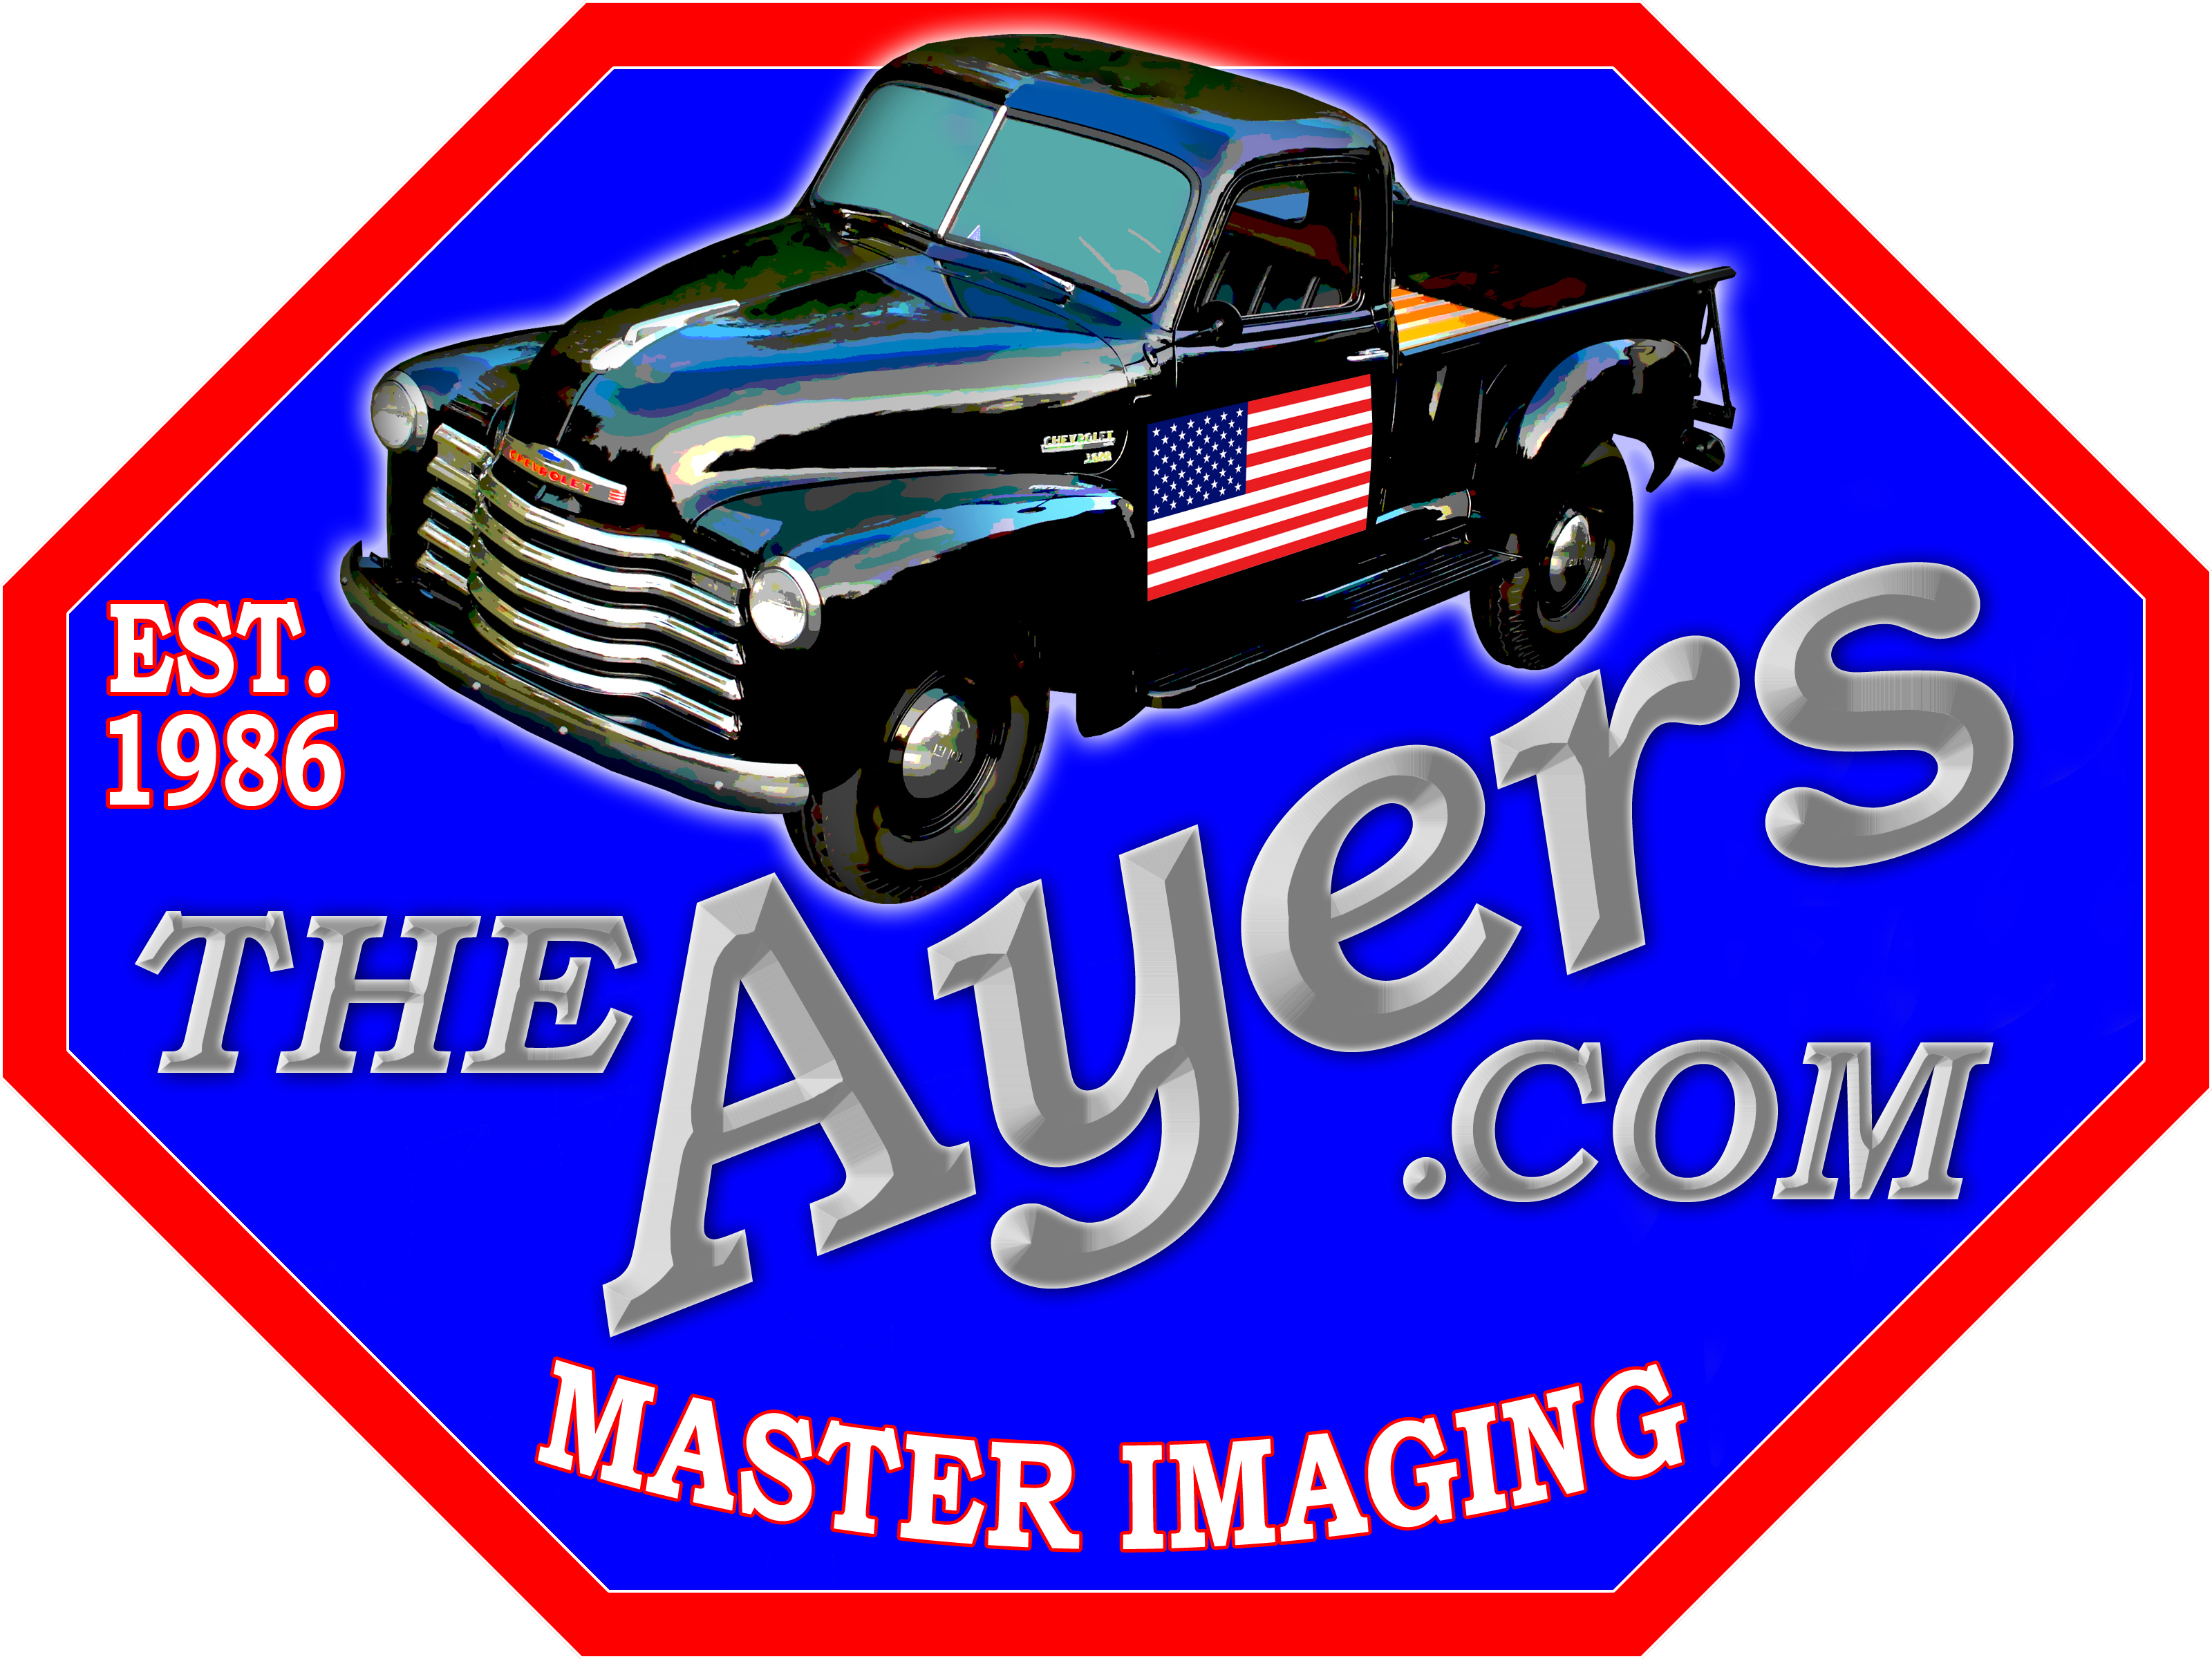 The Ayers Incorporated